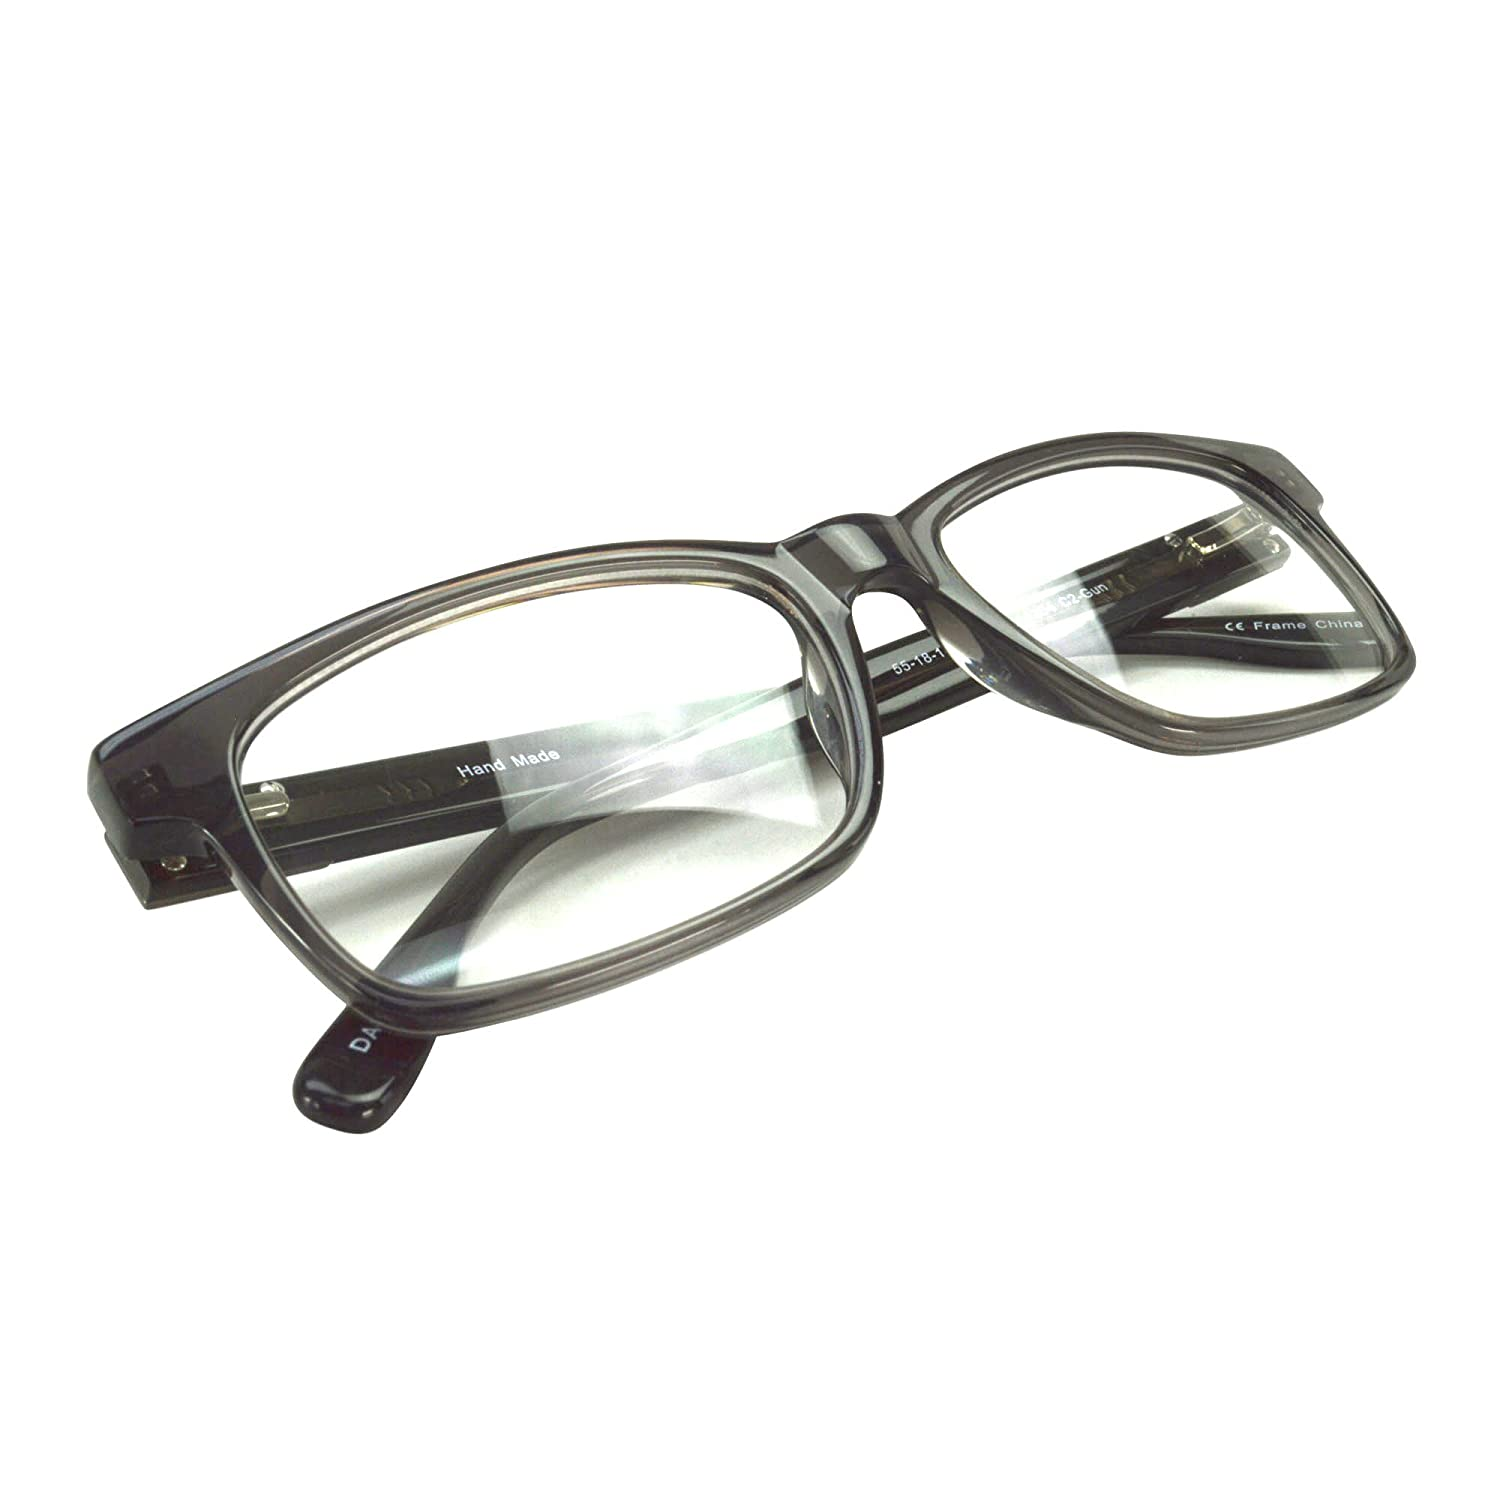 e079c4a6eaa Amazon.com  Mens Strong Glasses Frames Prescription Eyeglasses Rxable  55-18-145-37 in Gunmetal  Clothing